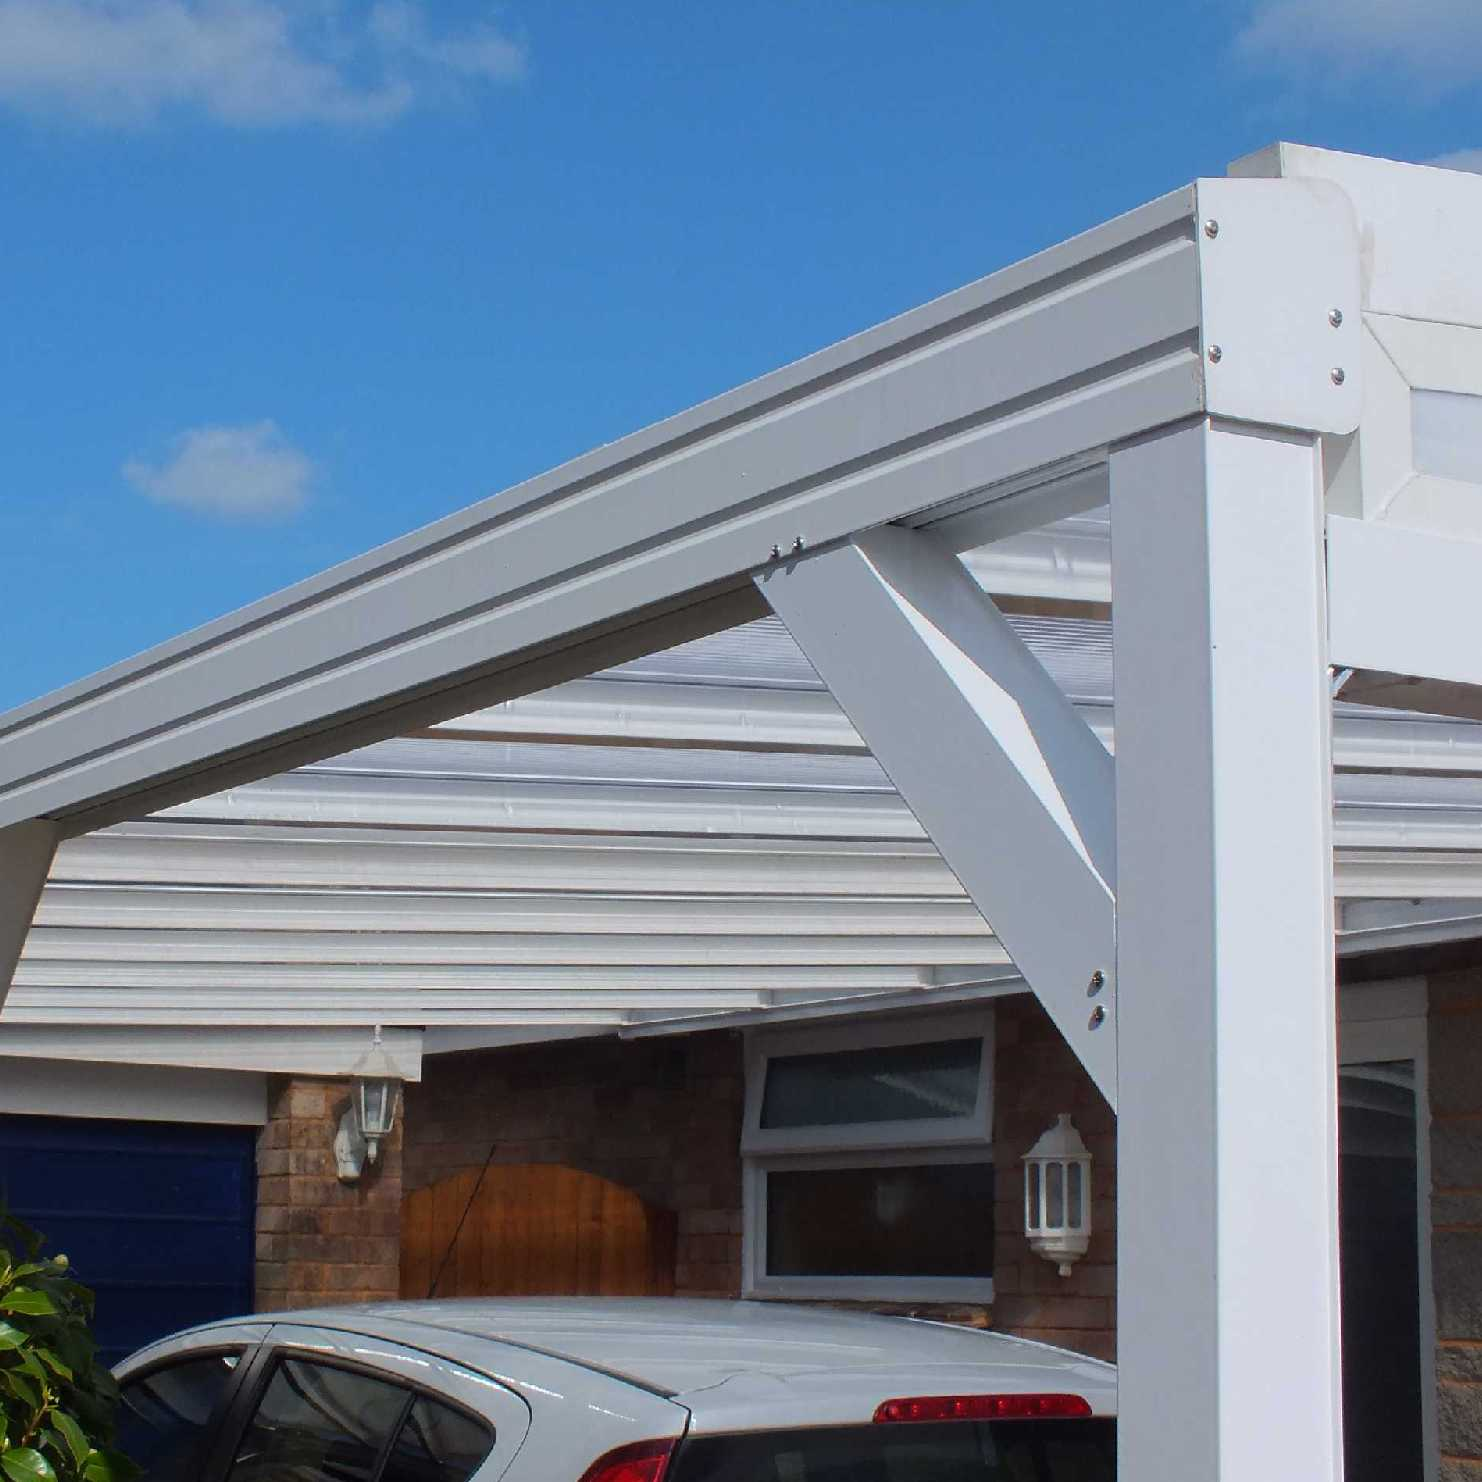 Great deals on Omega Smart White Lean-To Canopy with 16mm Polycarbonate Glazing - 10.6m (W) x 3.0m (P), (5) Supporting Posts